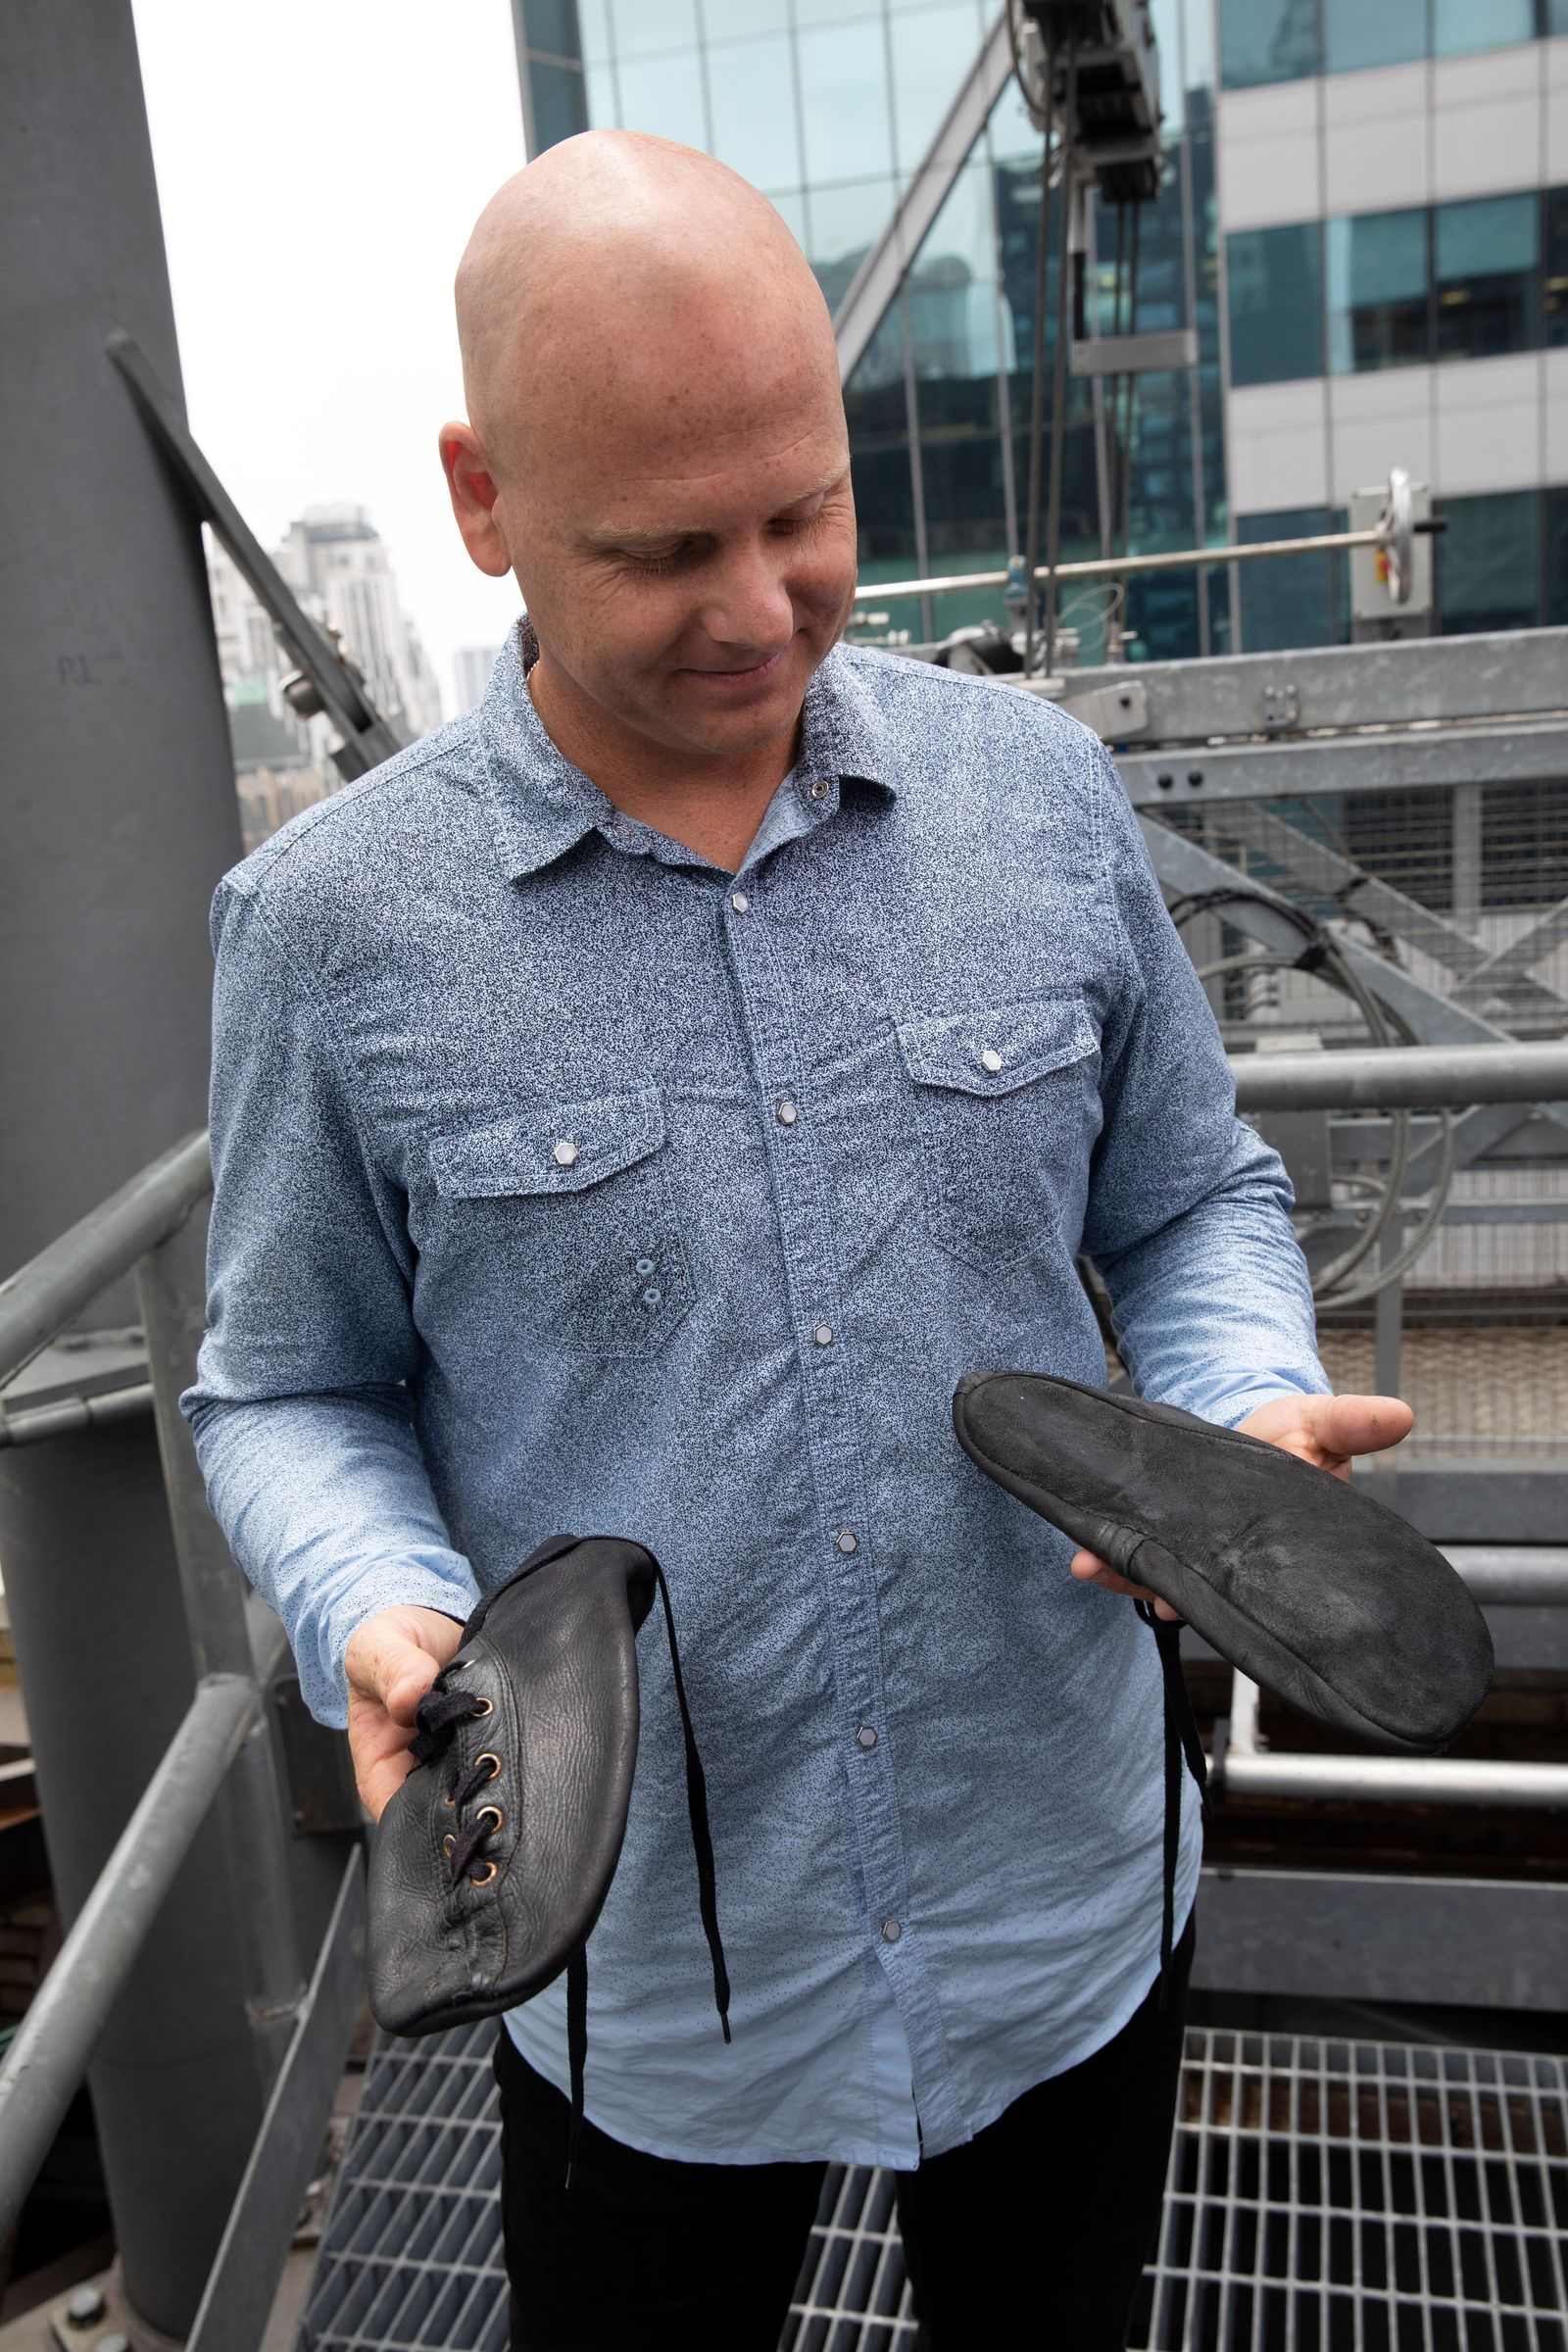 Aerialist Nik Wallenda talks with the media about his planned high-wire act, Thursday, June 20, 2019 in New York. Wallenda and his sister Lijana will cross Times Square on a high wire on Sunday. He is holding the shoes that he will wear. (AP Photo/Mark Lennihan)